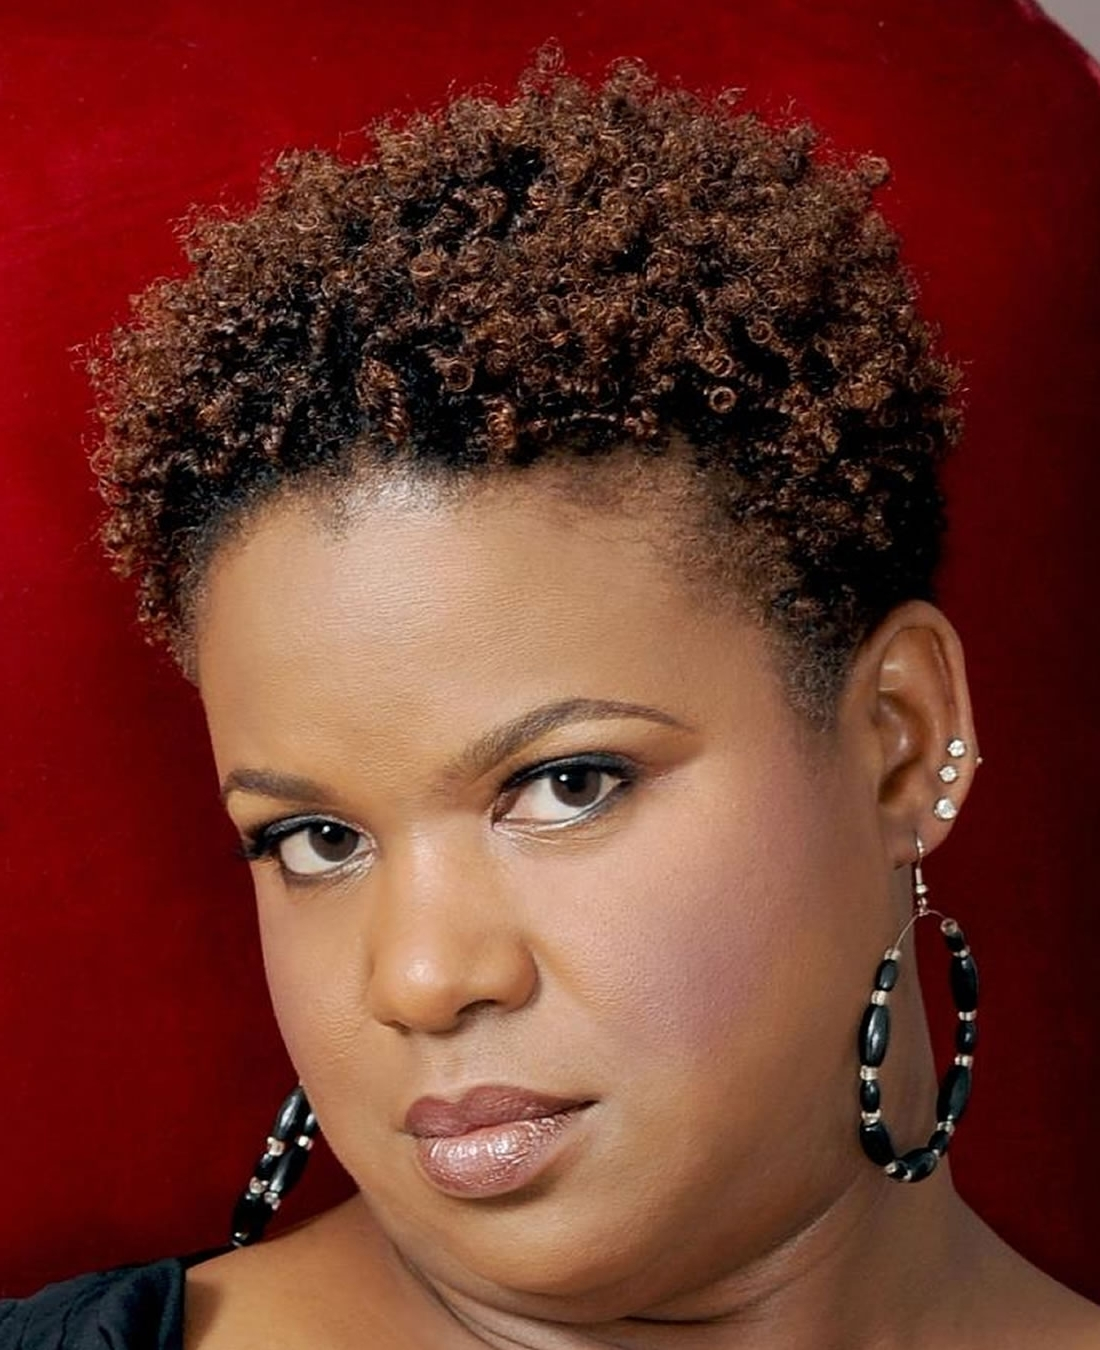 Fashionable Shaggy Hairstyles For African Hair Intended For African American Hairstyles For Round Faces 2018 (View 2 of 15)